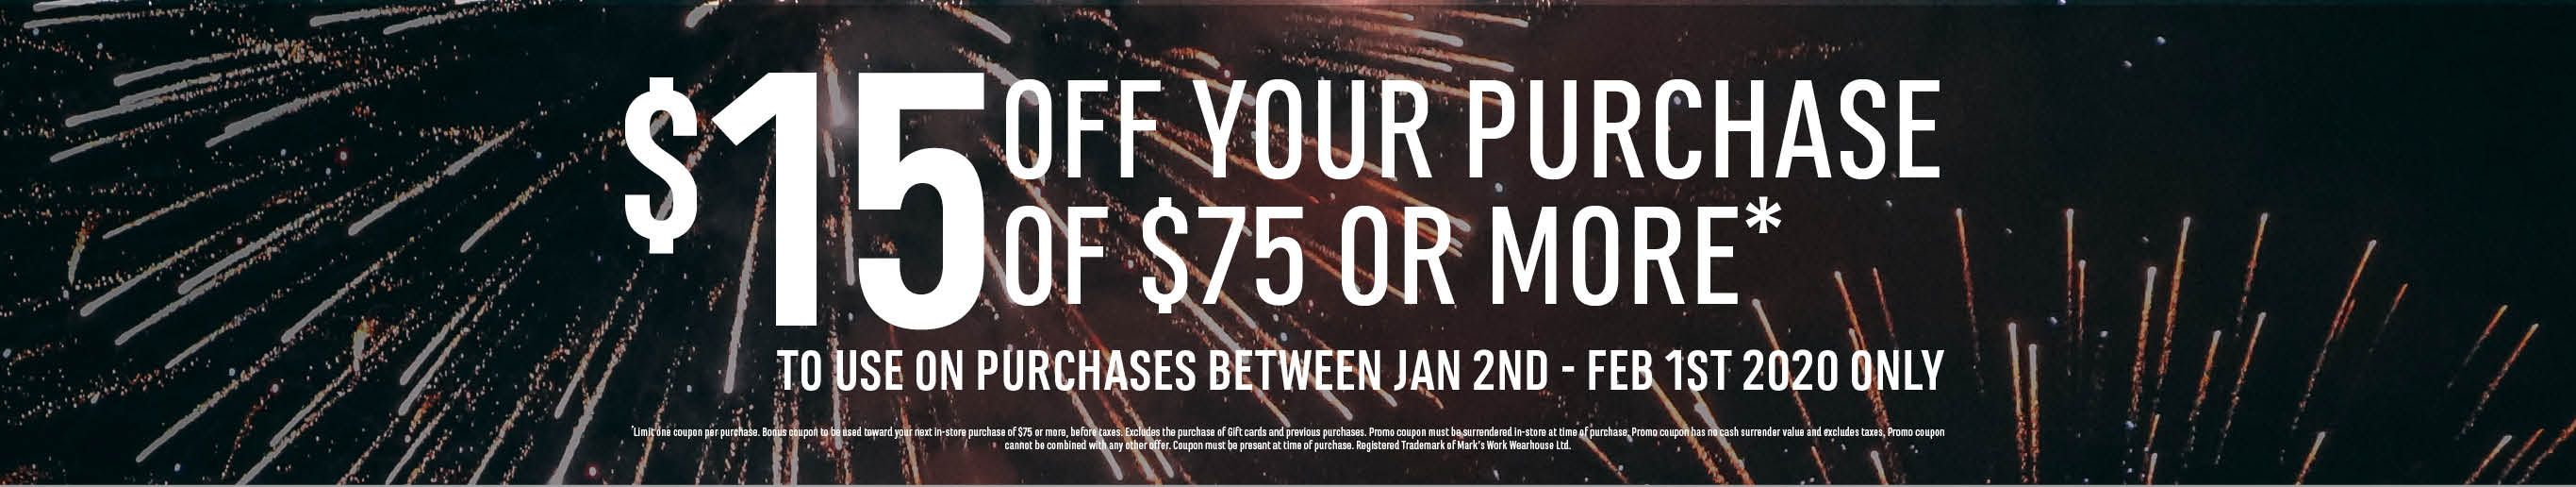 $15 off your purchase of $75 or more.